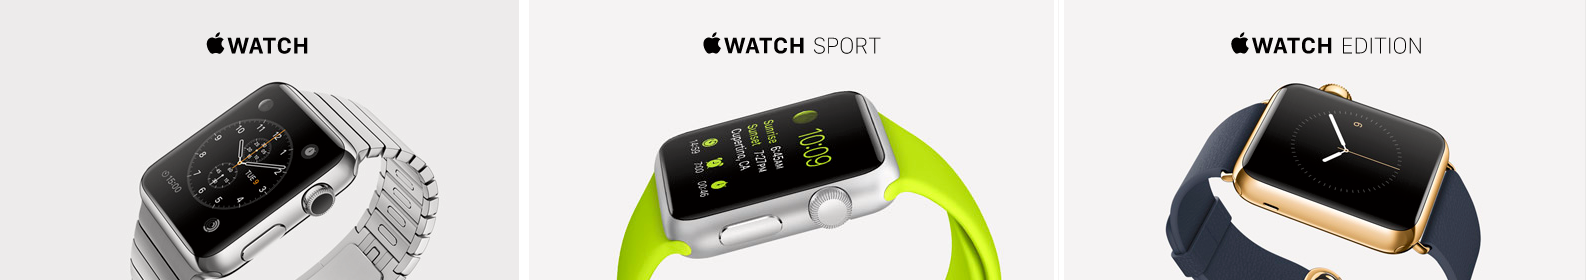 Apple Watch kommer i tre ulike grunnmodeller. Foto: Apple